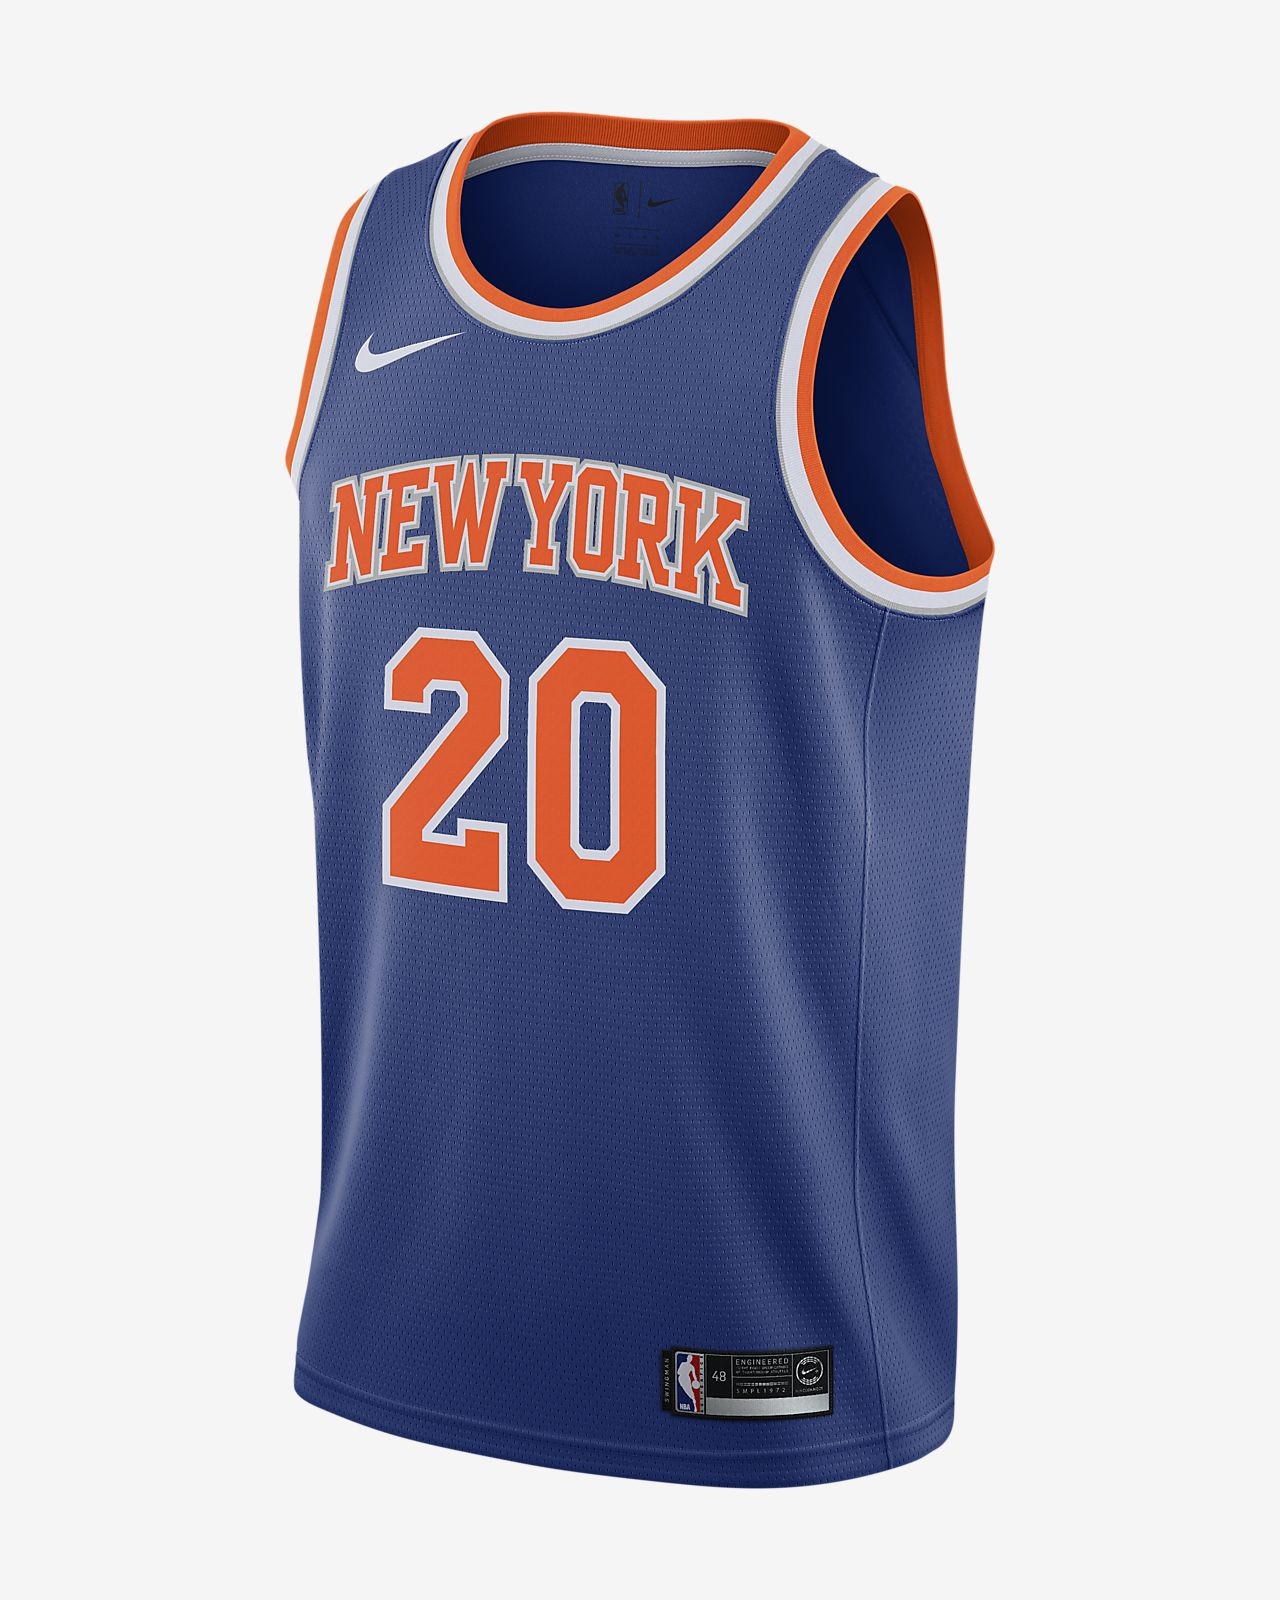 2a53058f4c67 Men s Nike NBA Connected Jersey. Kevin Knox Icon Edition Swingman (New York  Knicks)